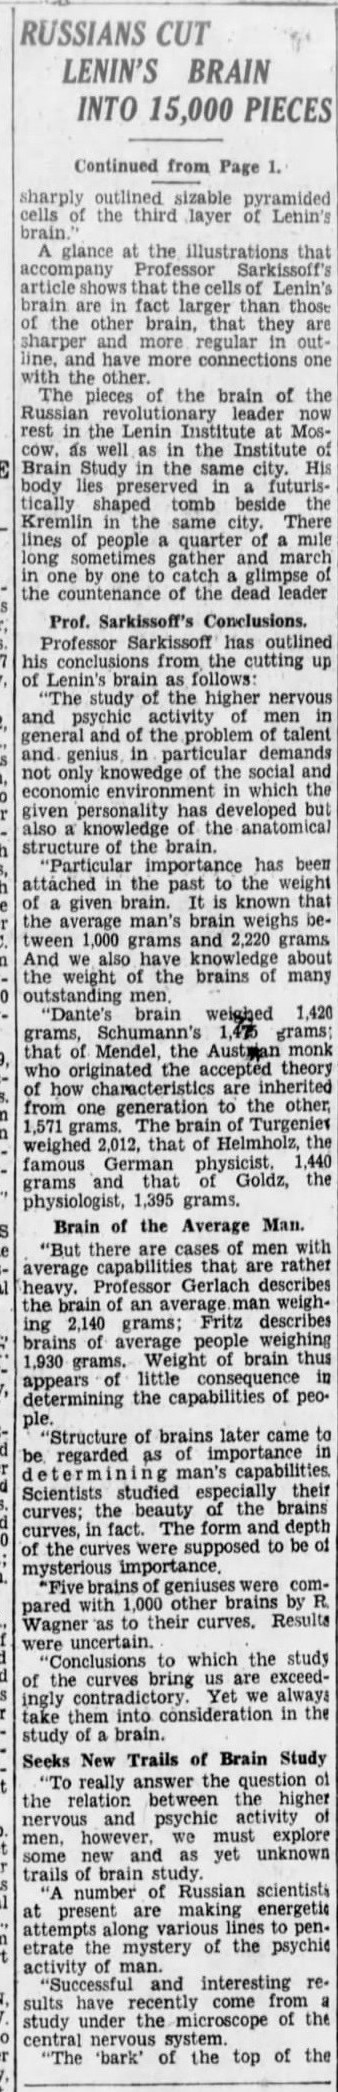 """lenin22 e1413276552344 Old Print Article: """"Russians Cut Lenin's Brain Into 15,000 Pieces To Find Secret Of His Greatness,"""" Brooklyn Daily Eagle (1929)"""